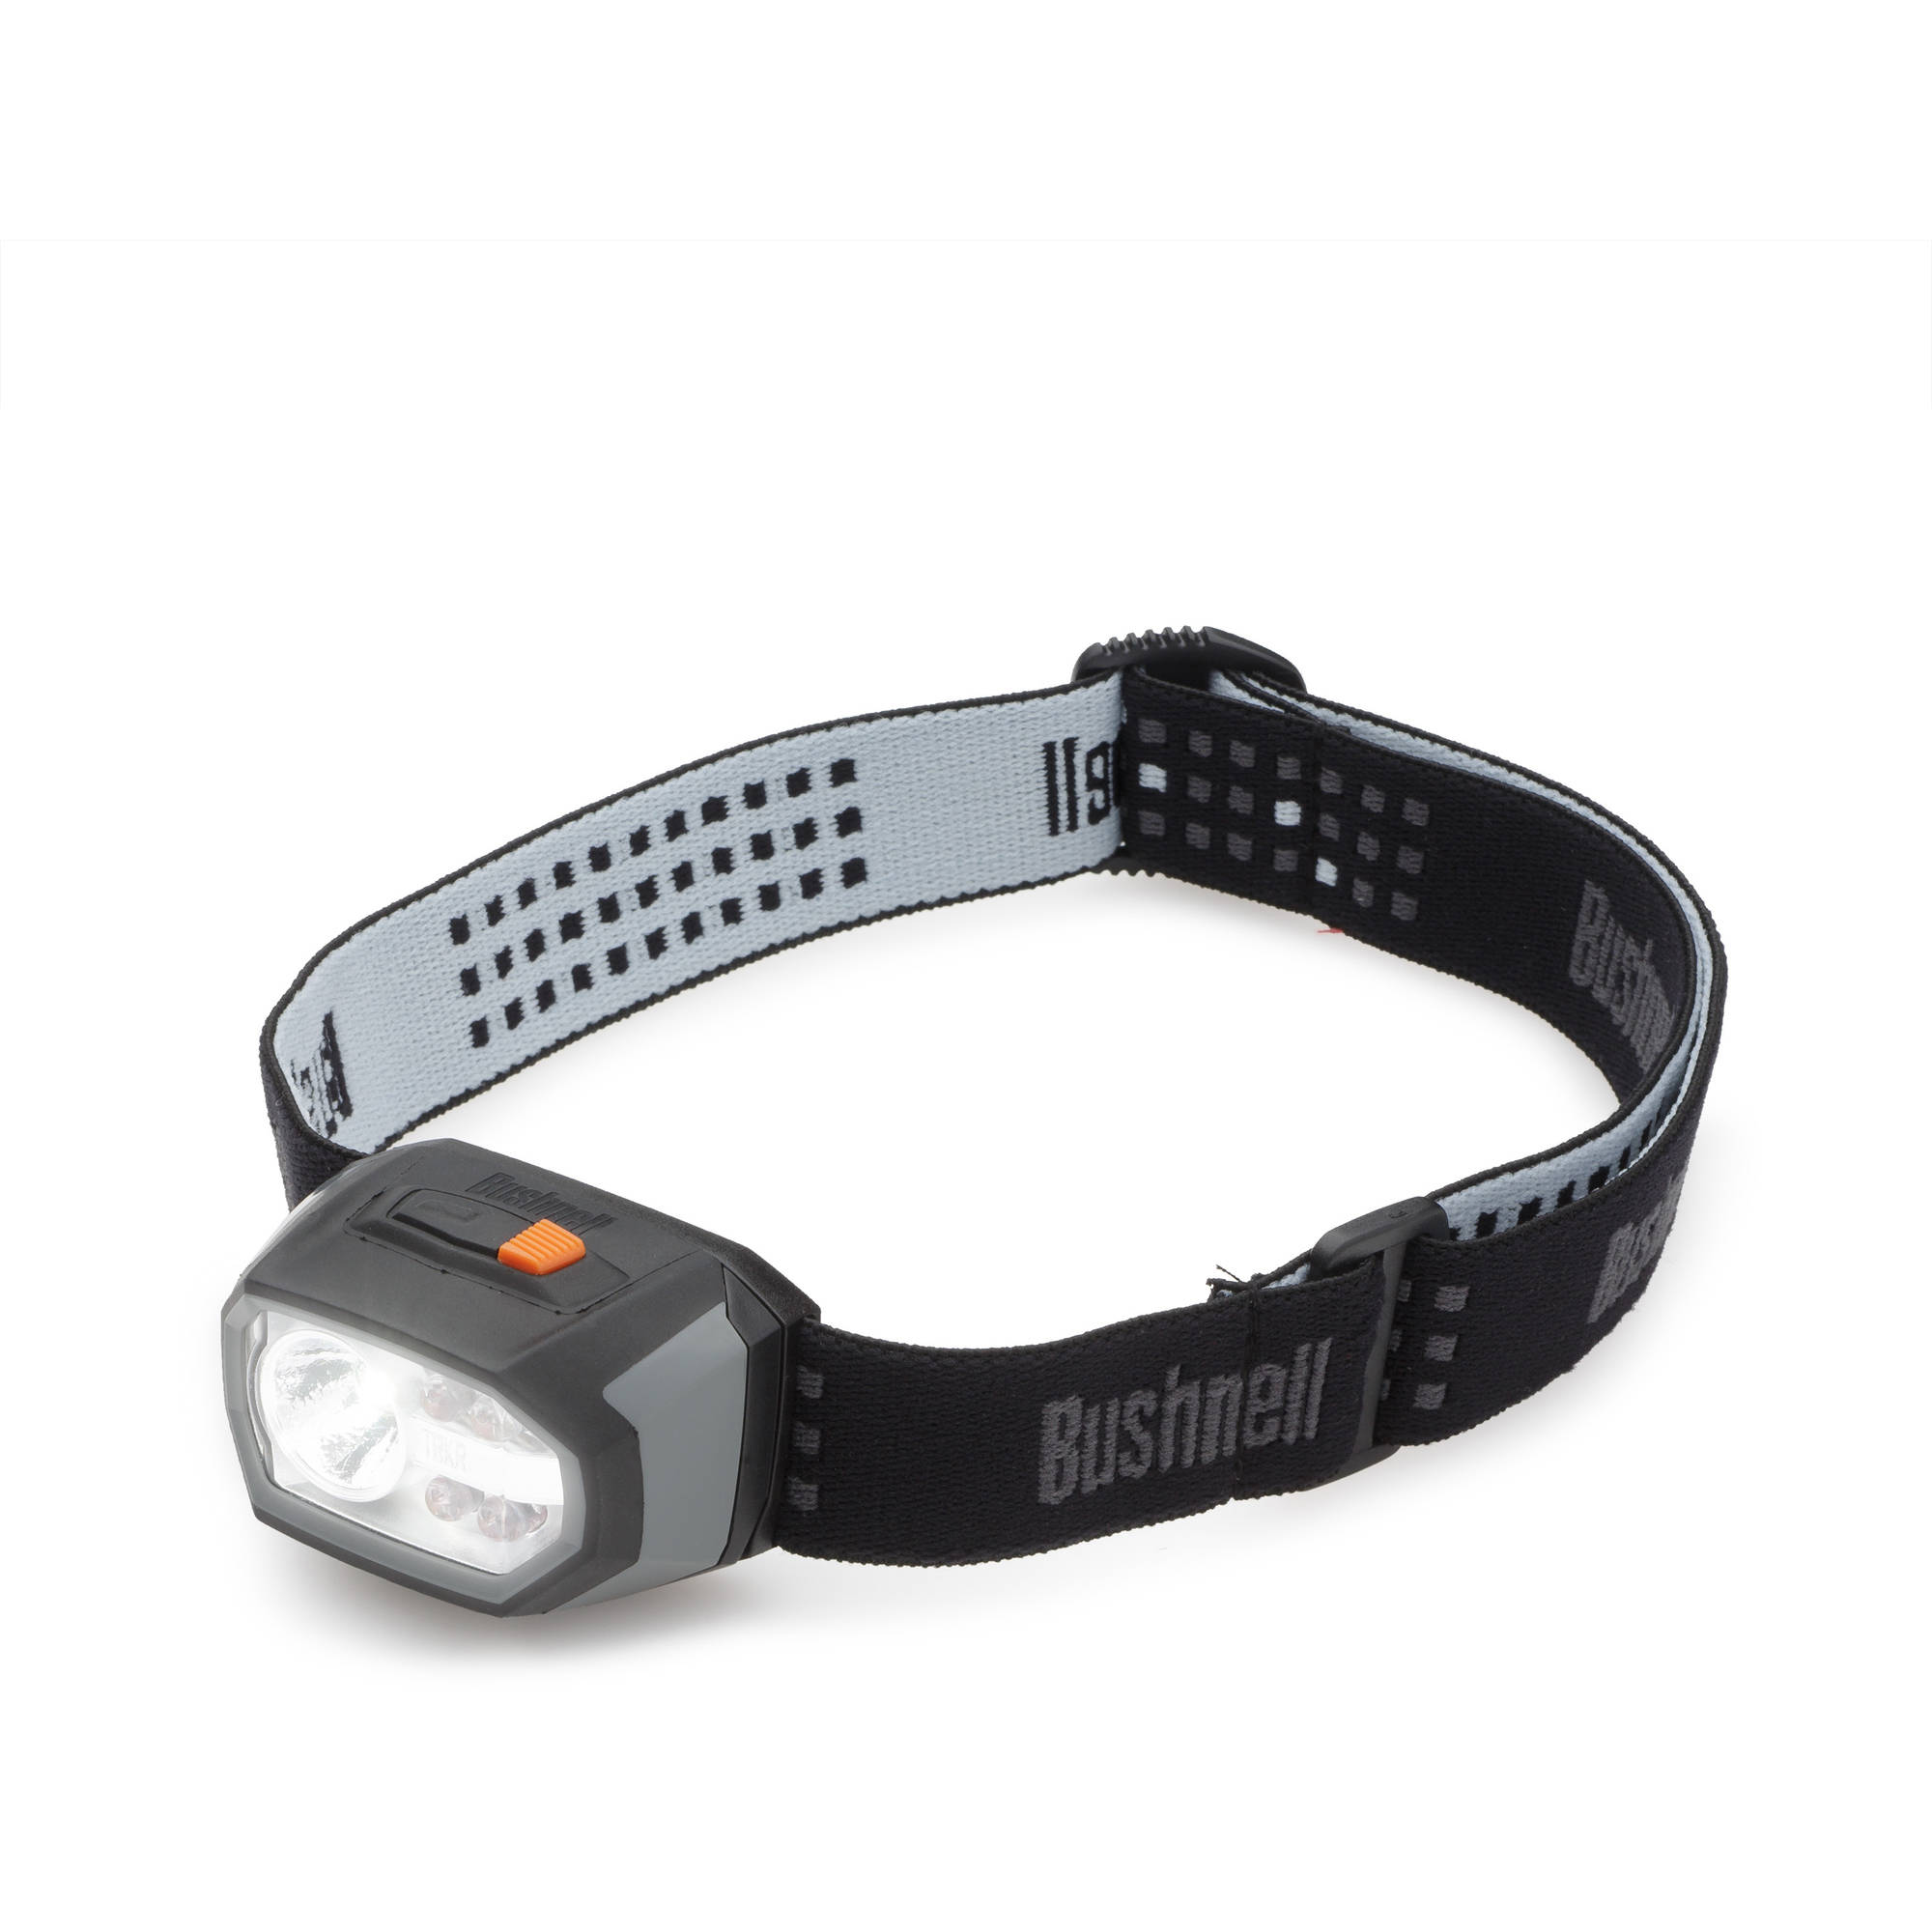 Bushnell TRKR Headlamp, 150 Lumens